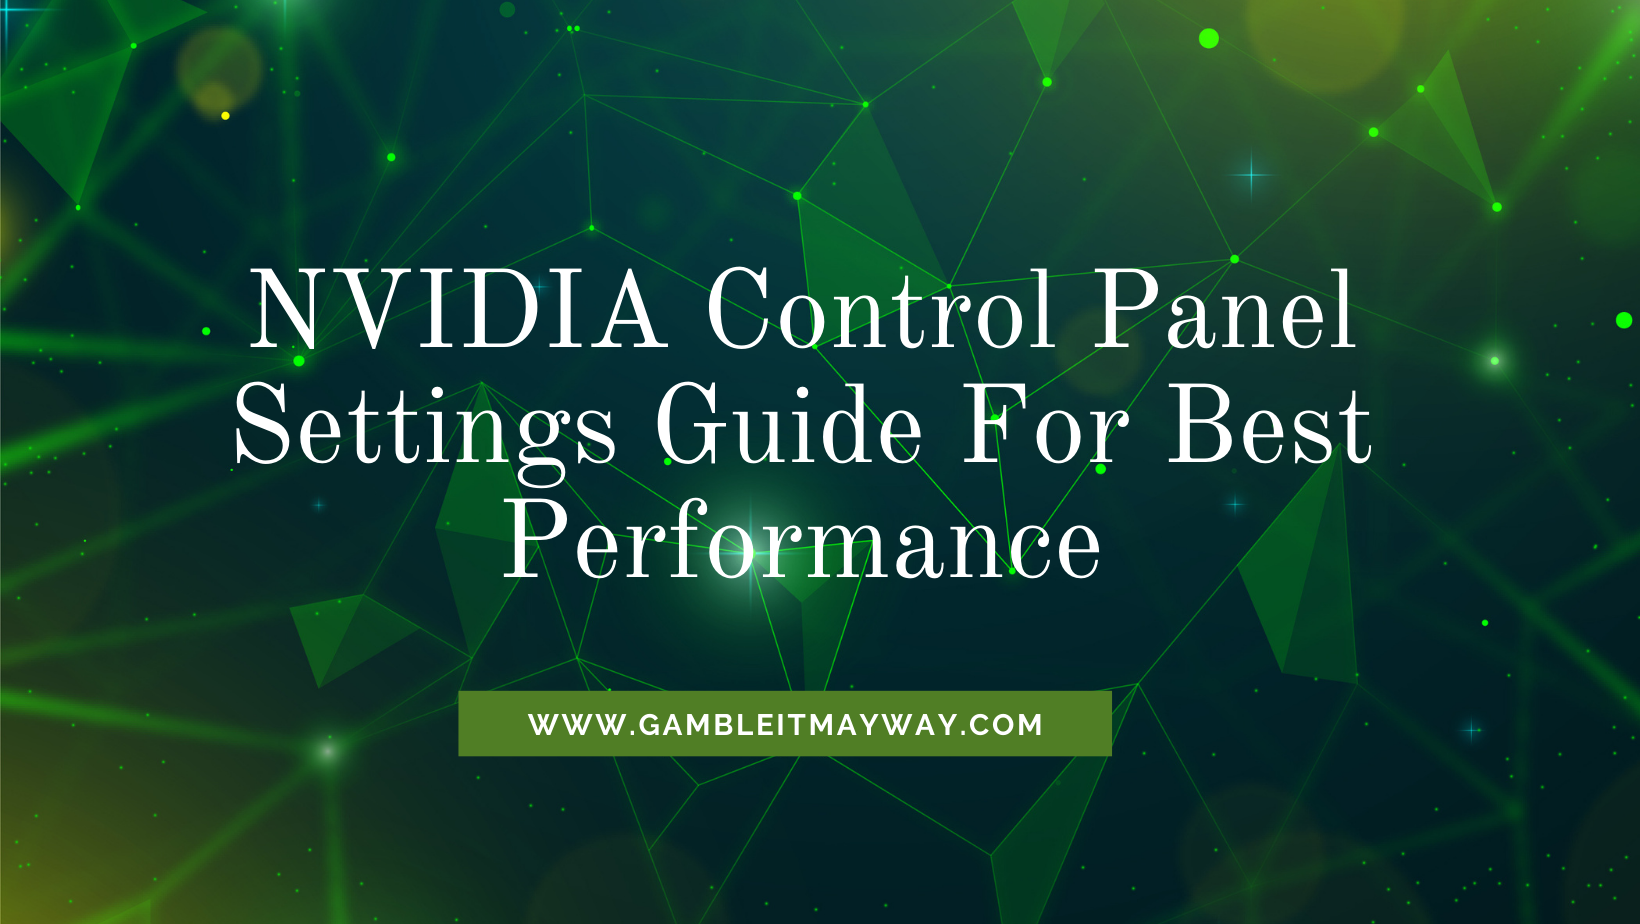 NVIDIA Control Panel Settings Guide For Best Performance